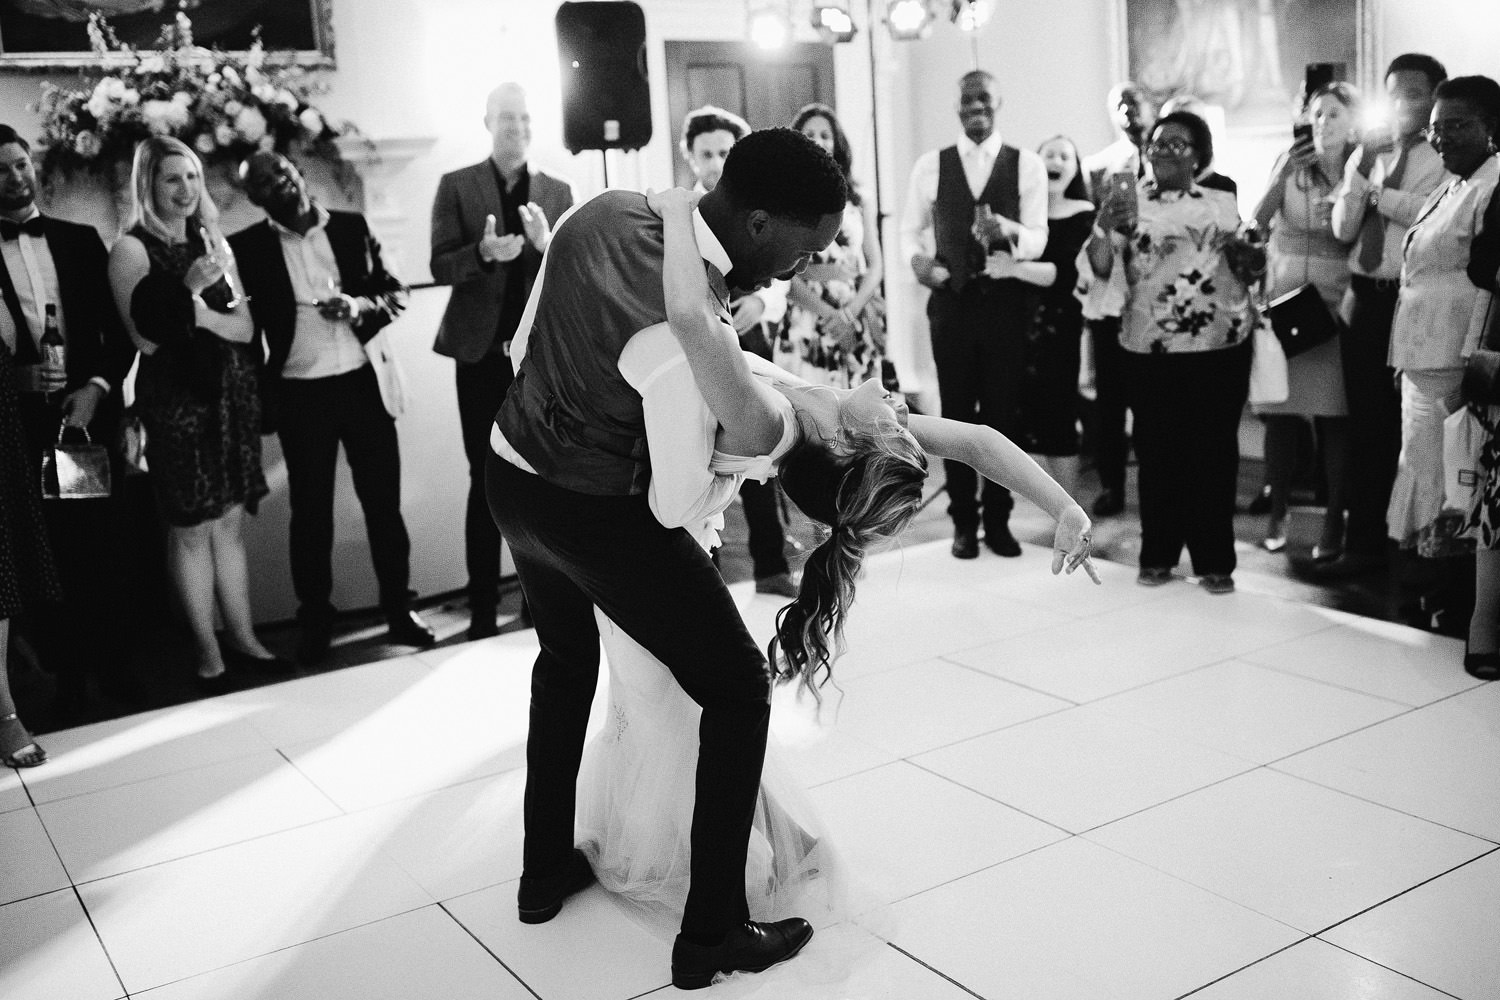 groom bends bride backwards during first dance at wedding